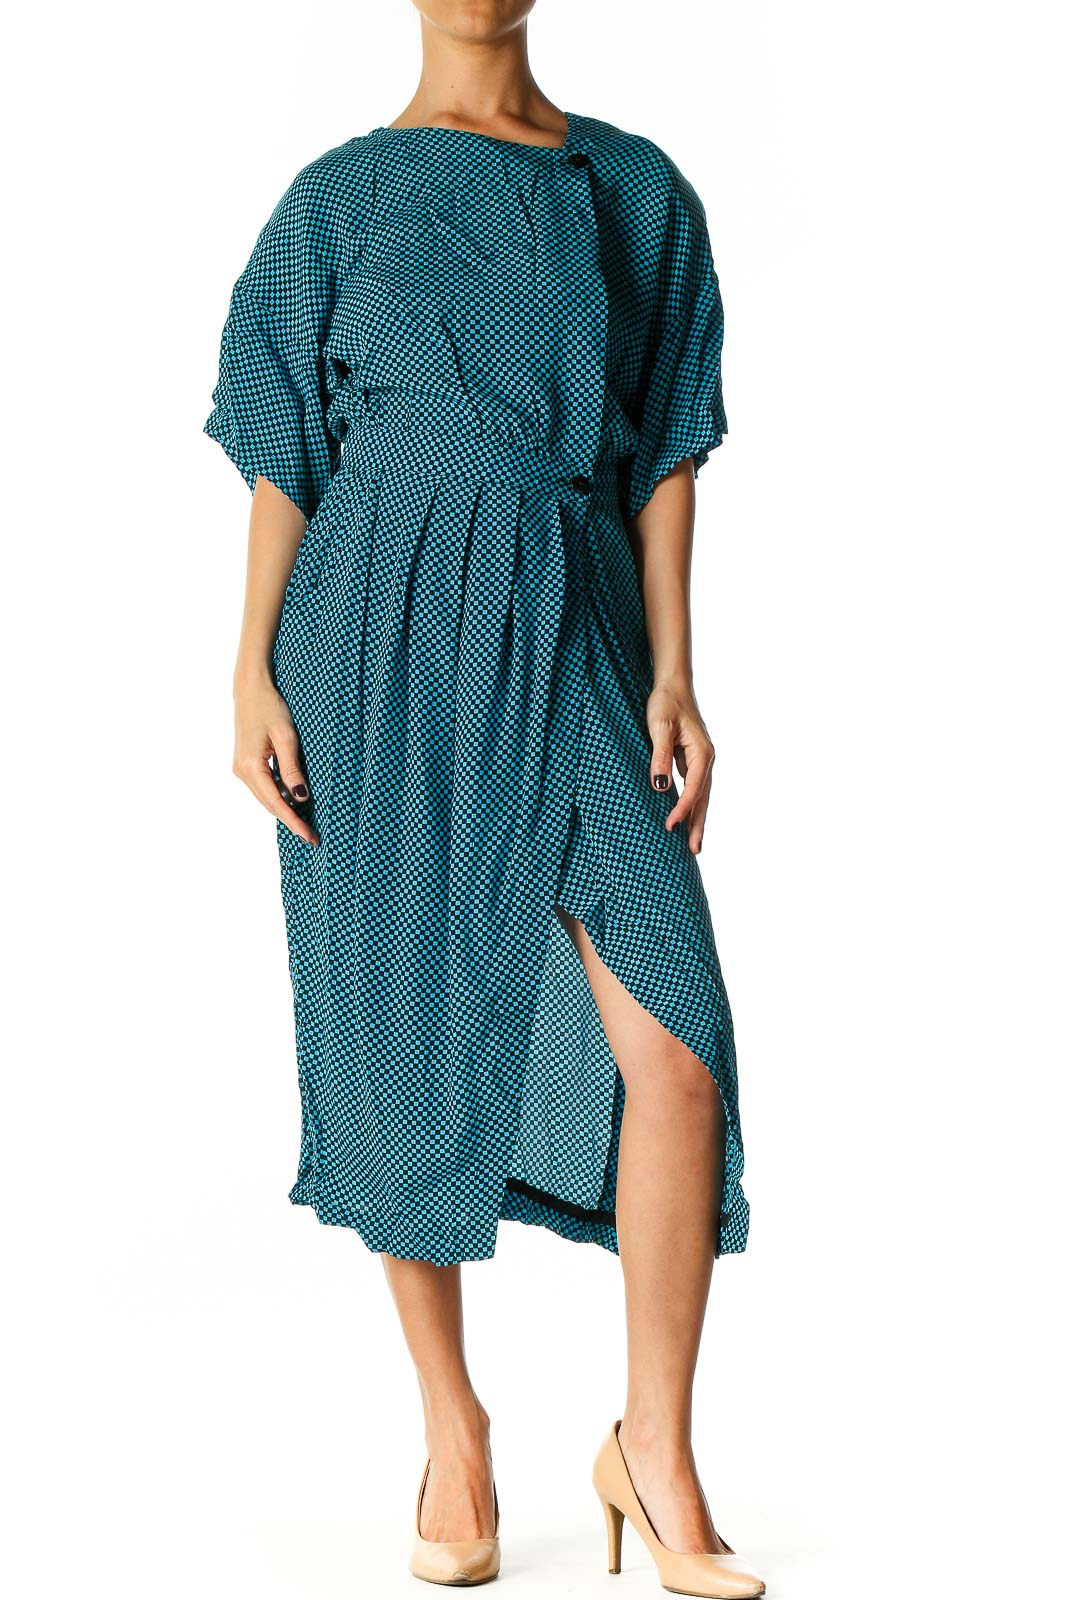 Blue Polka Dot Casual Shift Dress Front